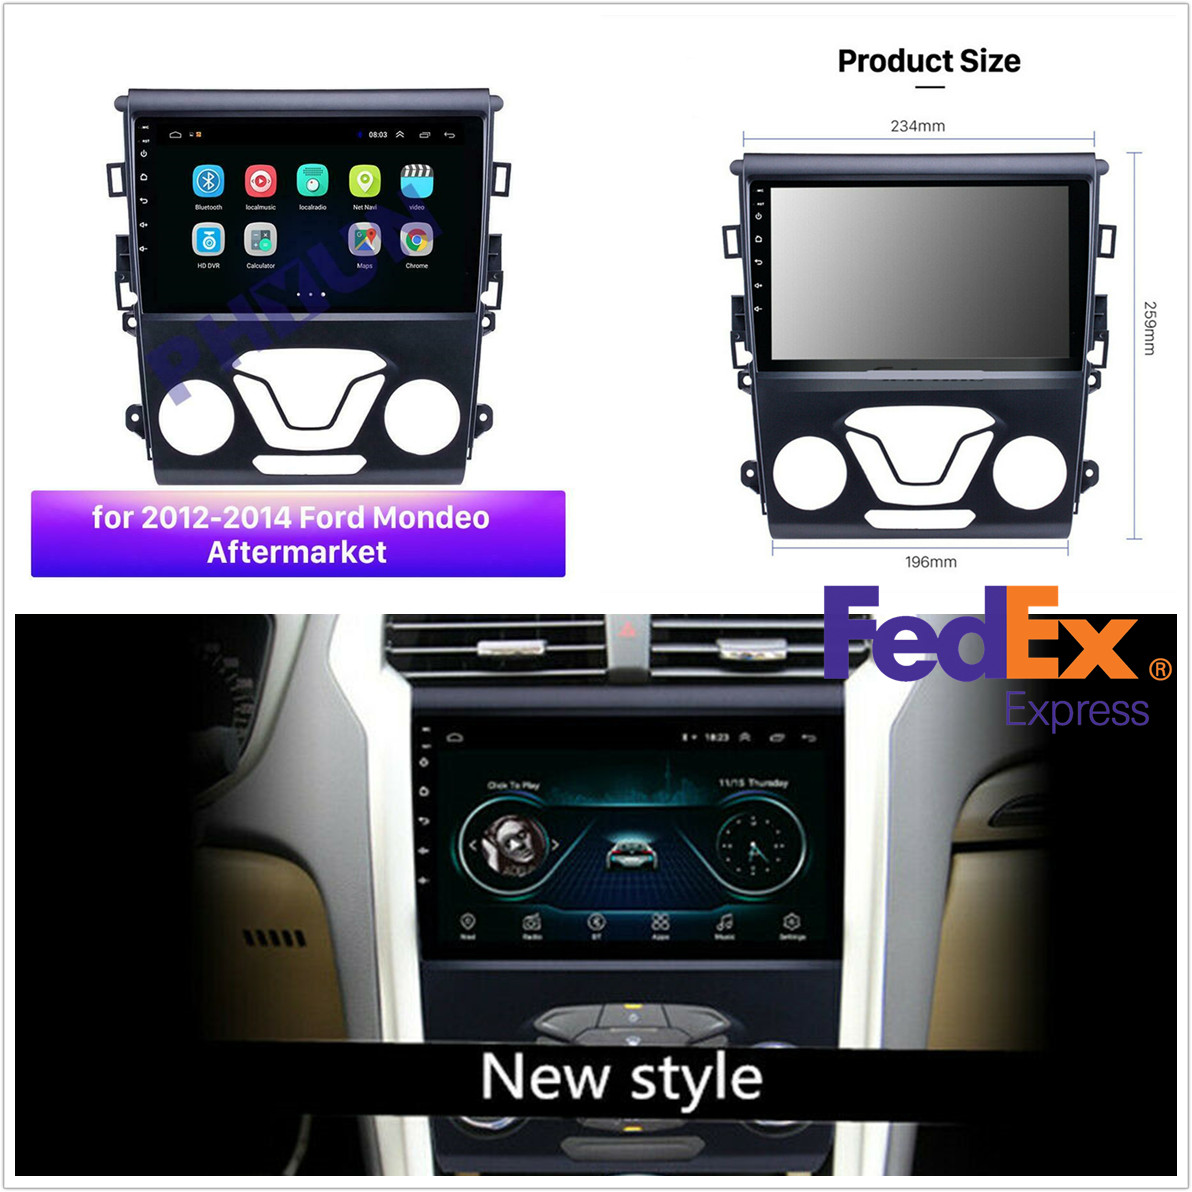 9 Android 9 1 Car Radio Gps Navigation Dvd Player For Ford Fusion Mondeo 12 14 Ebay